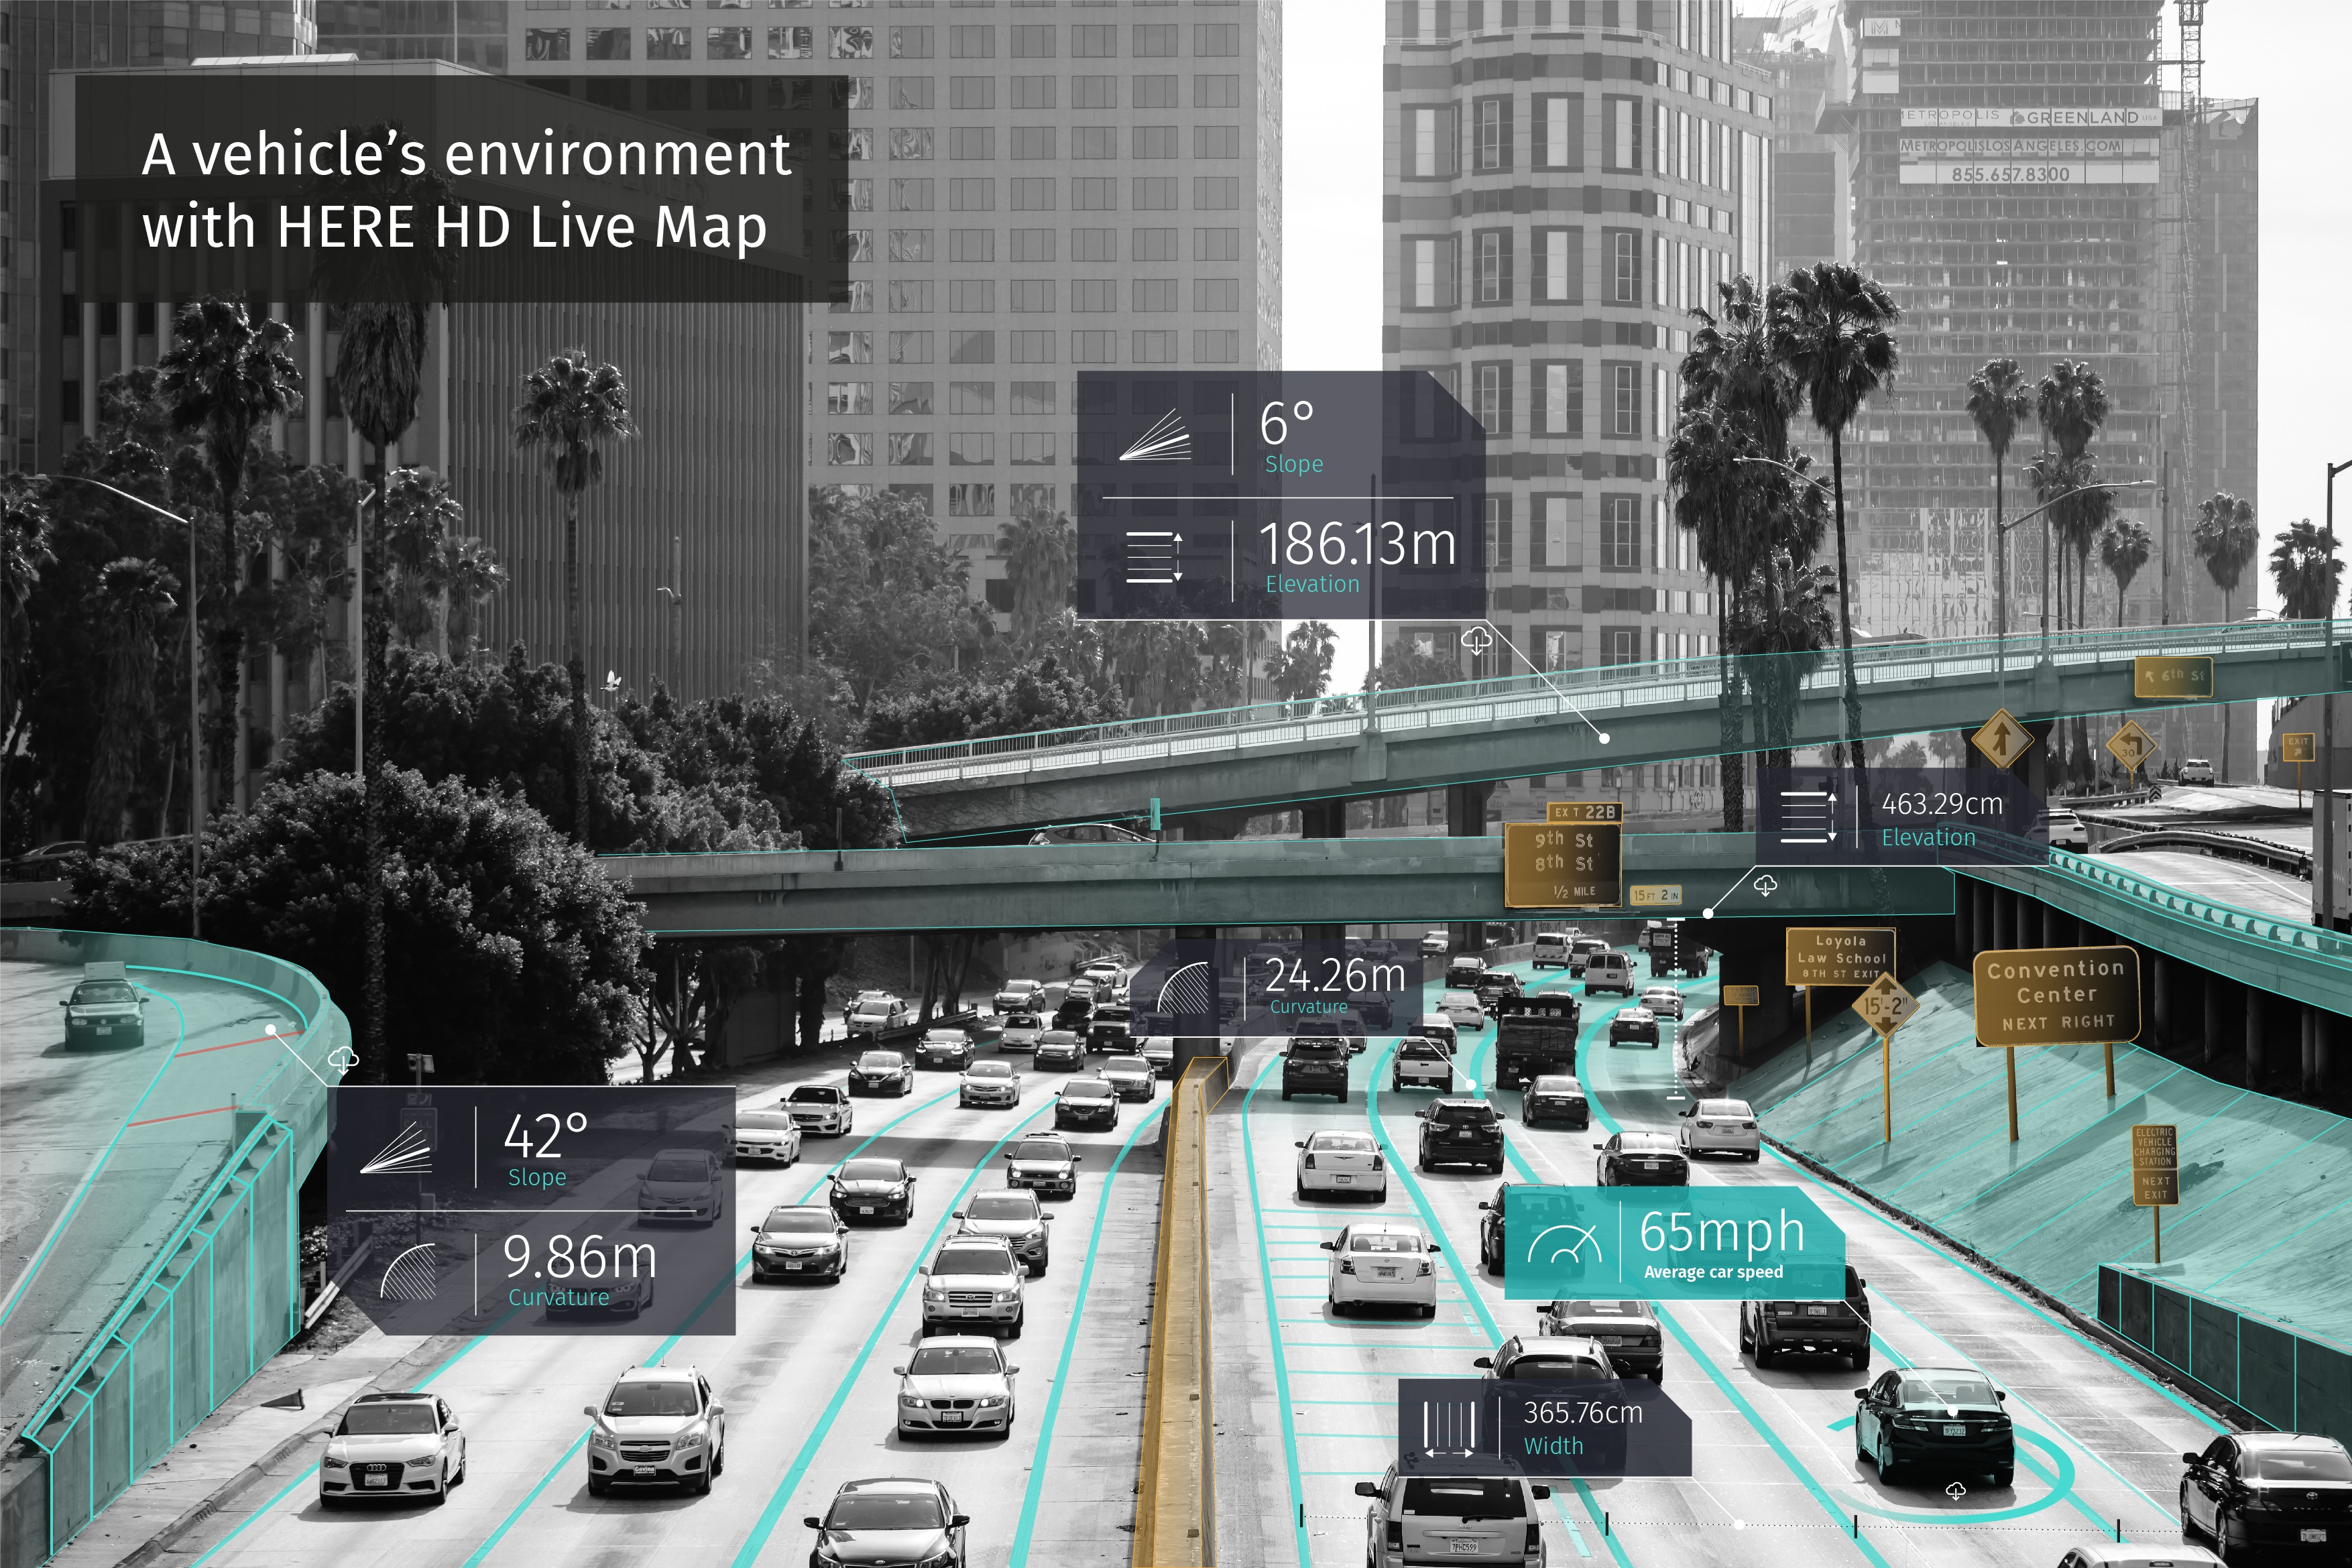 A vehicle's environment with HD Live Map on board.jpg